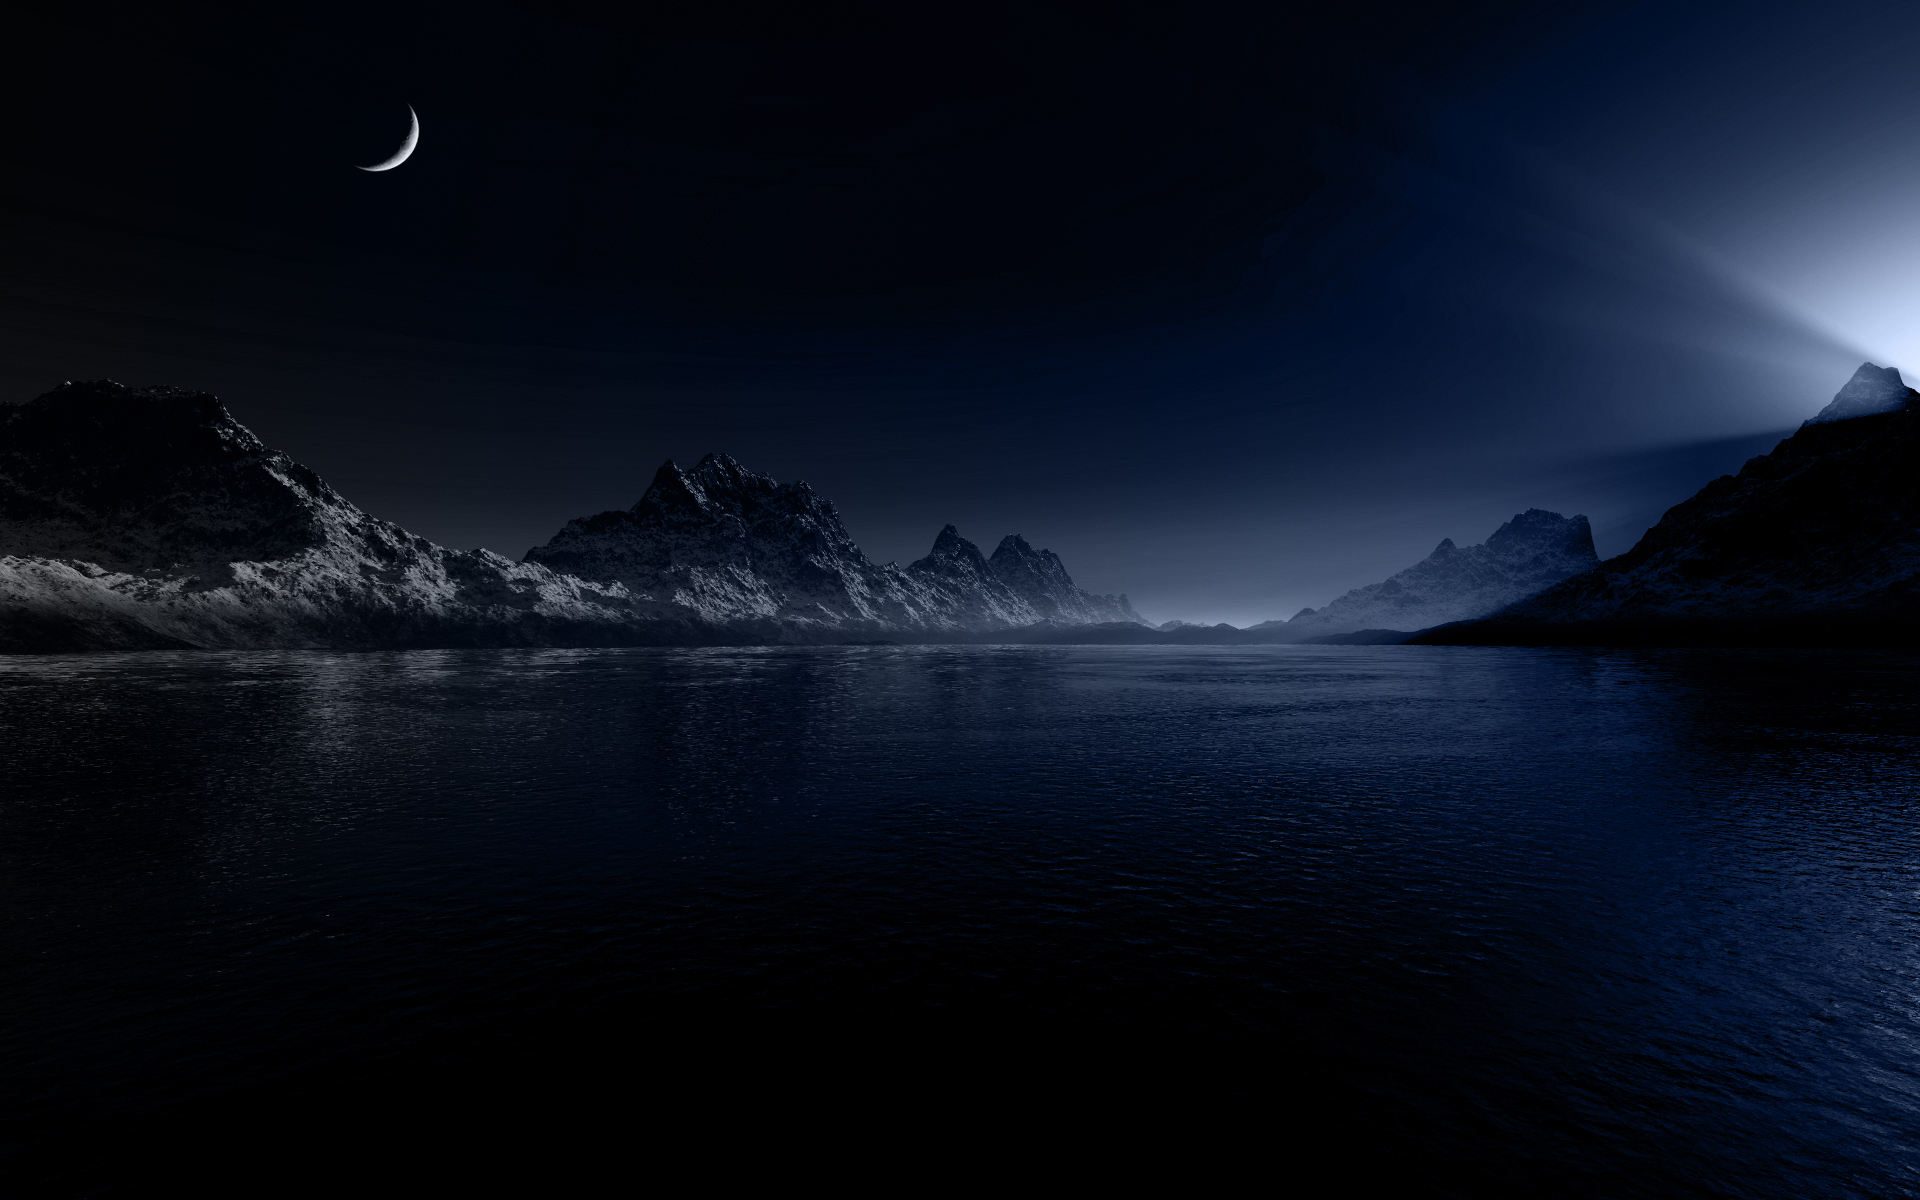 Landscapes Night Wallpaper 1920x1200 Landscapes Night Moon 1920x1200